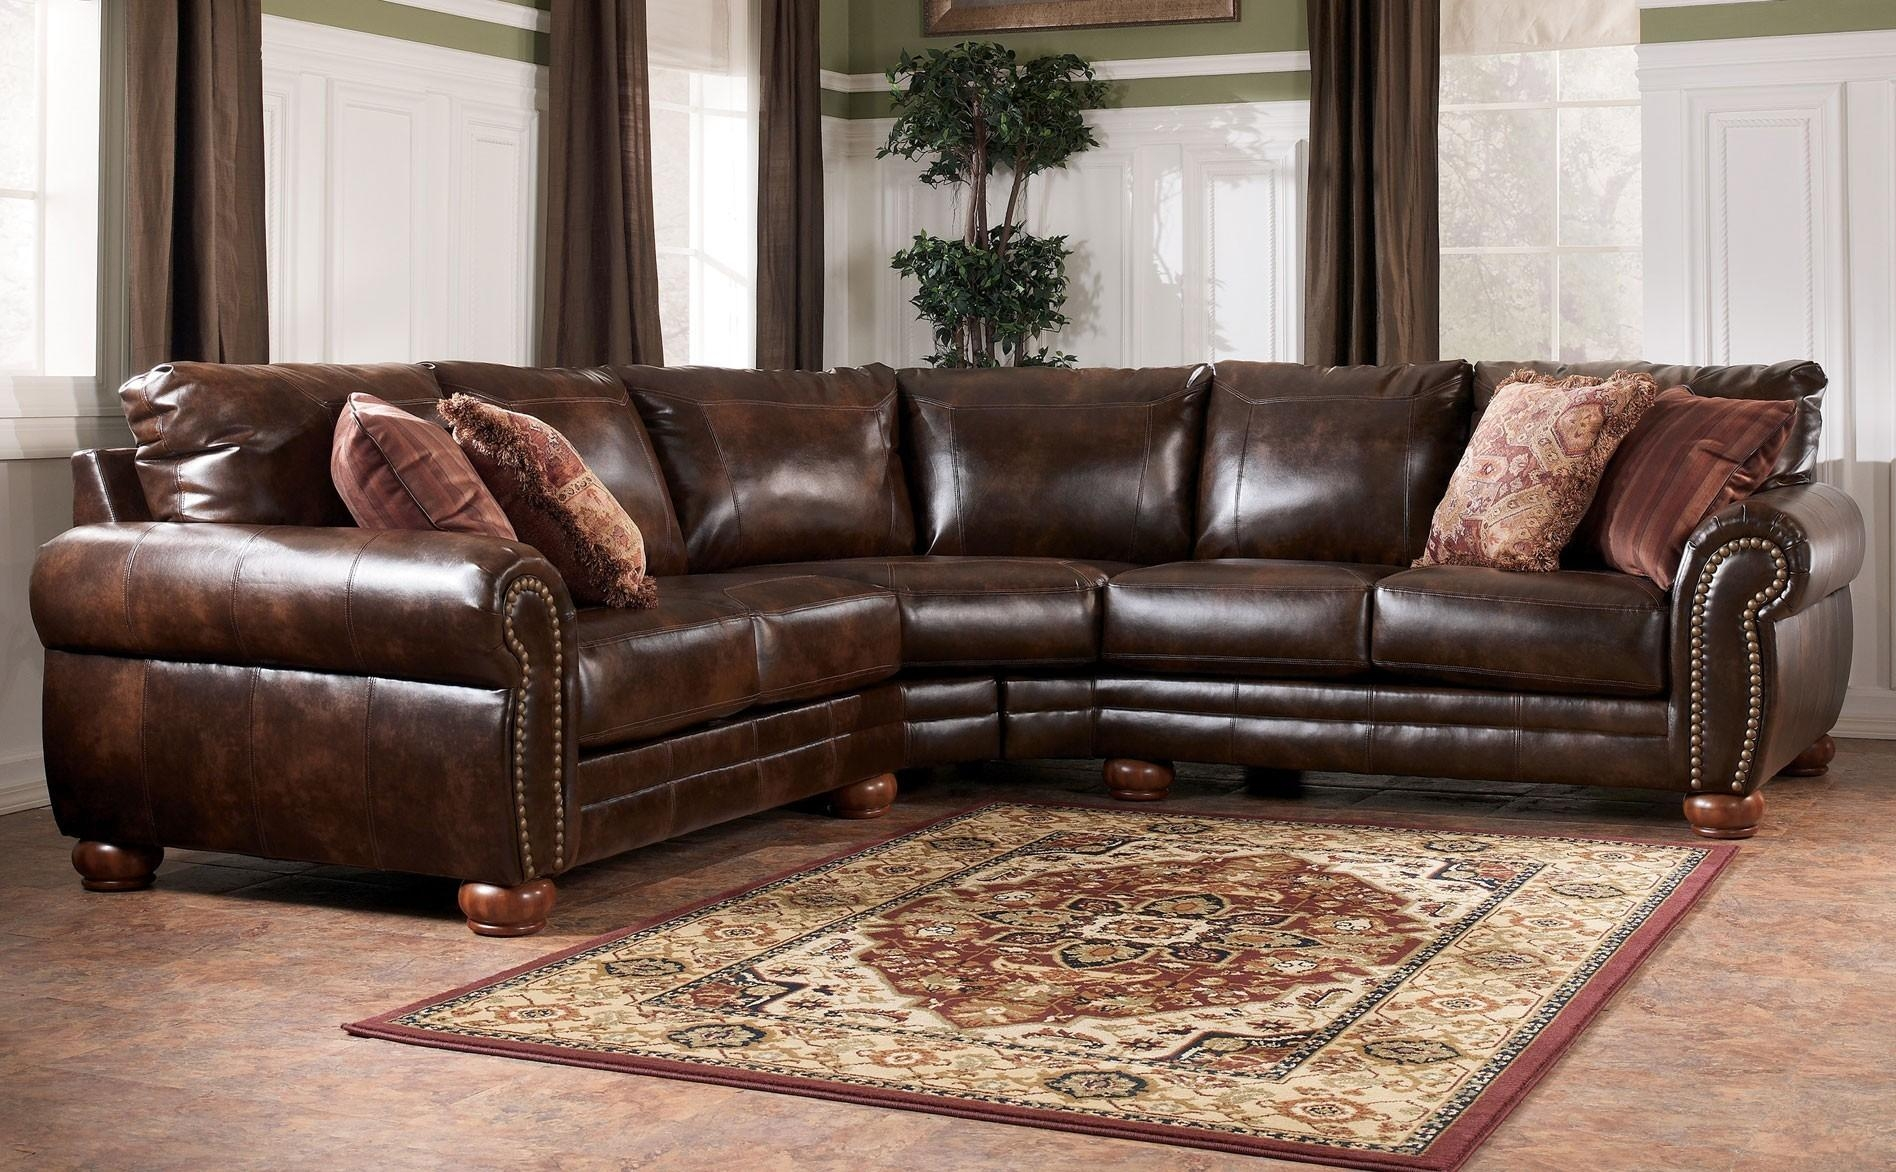 costco sofas how much fabric will i need to reupholster a sofa 20 ideas of leather sectional